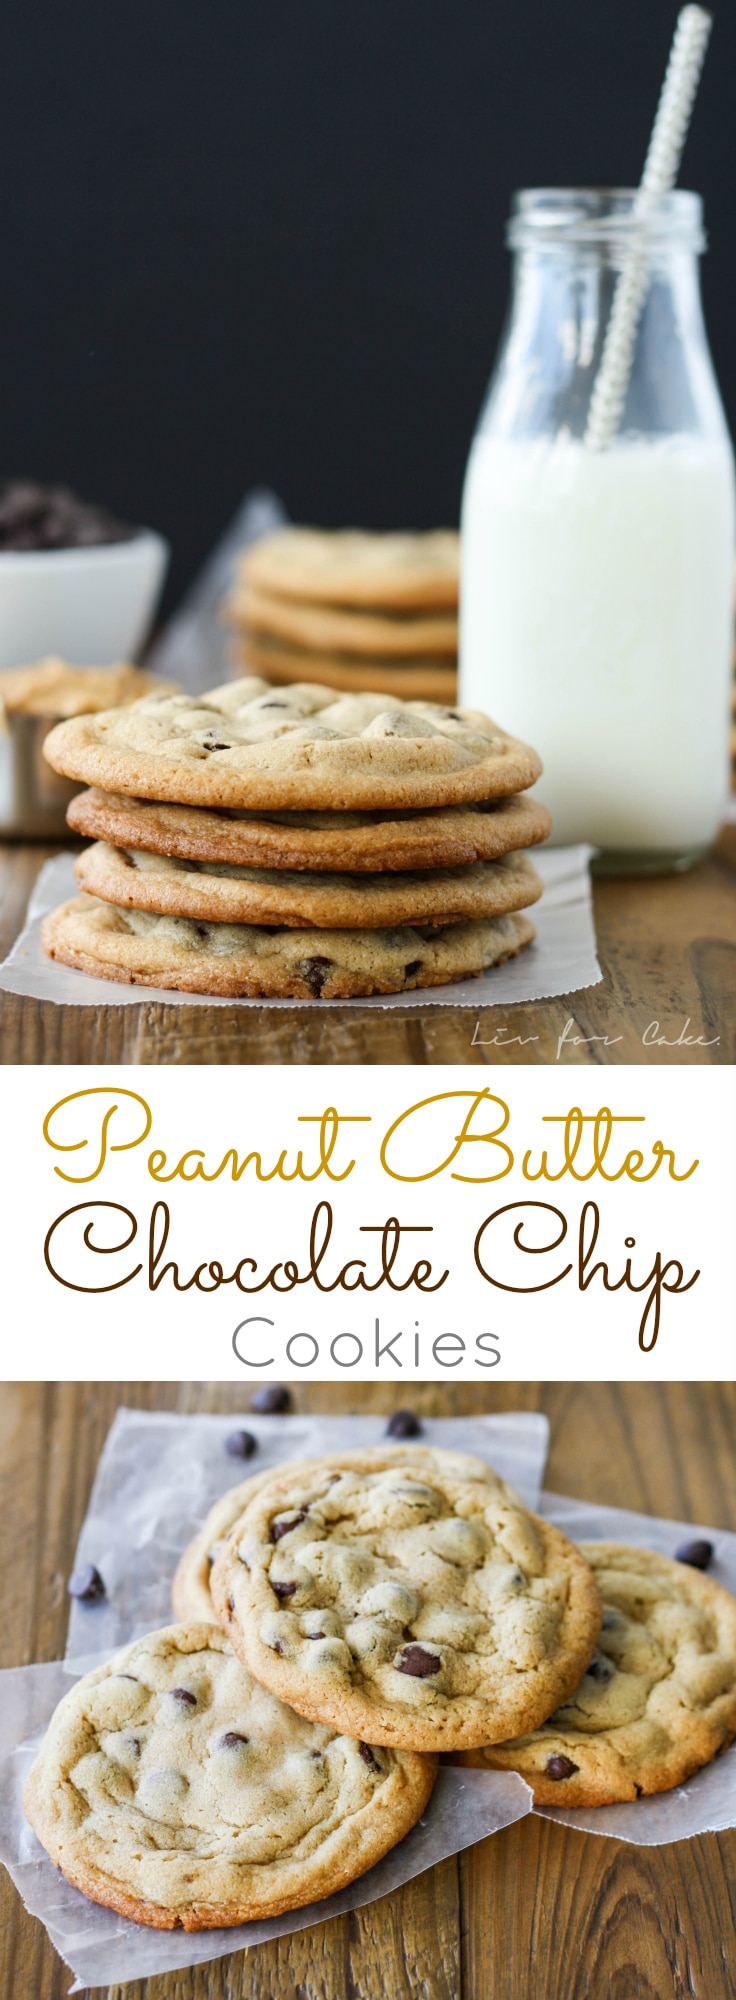 Peanut Butter Chocolate Chip Cookies collage